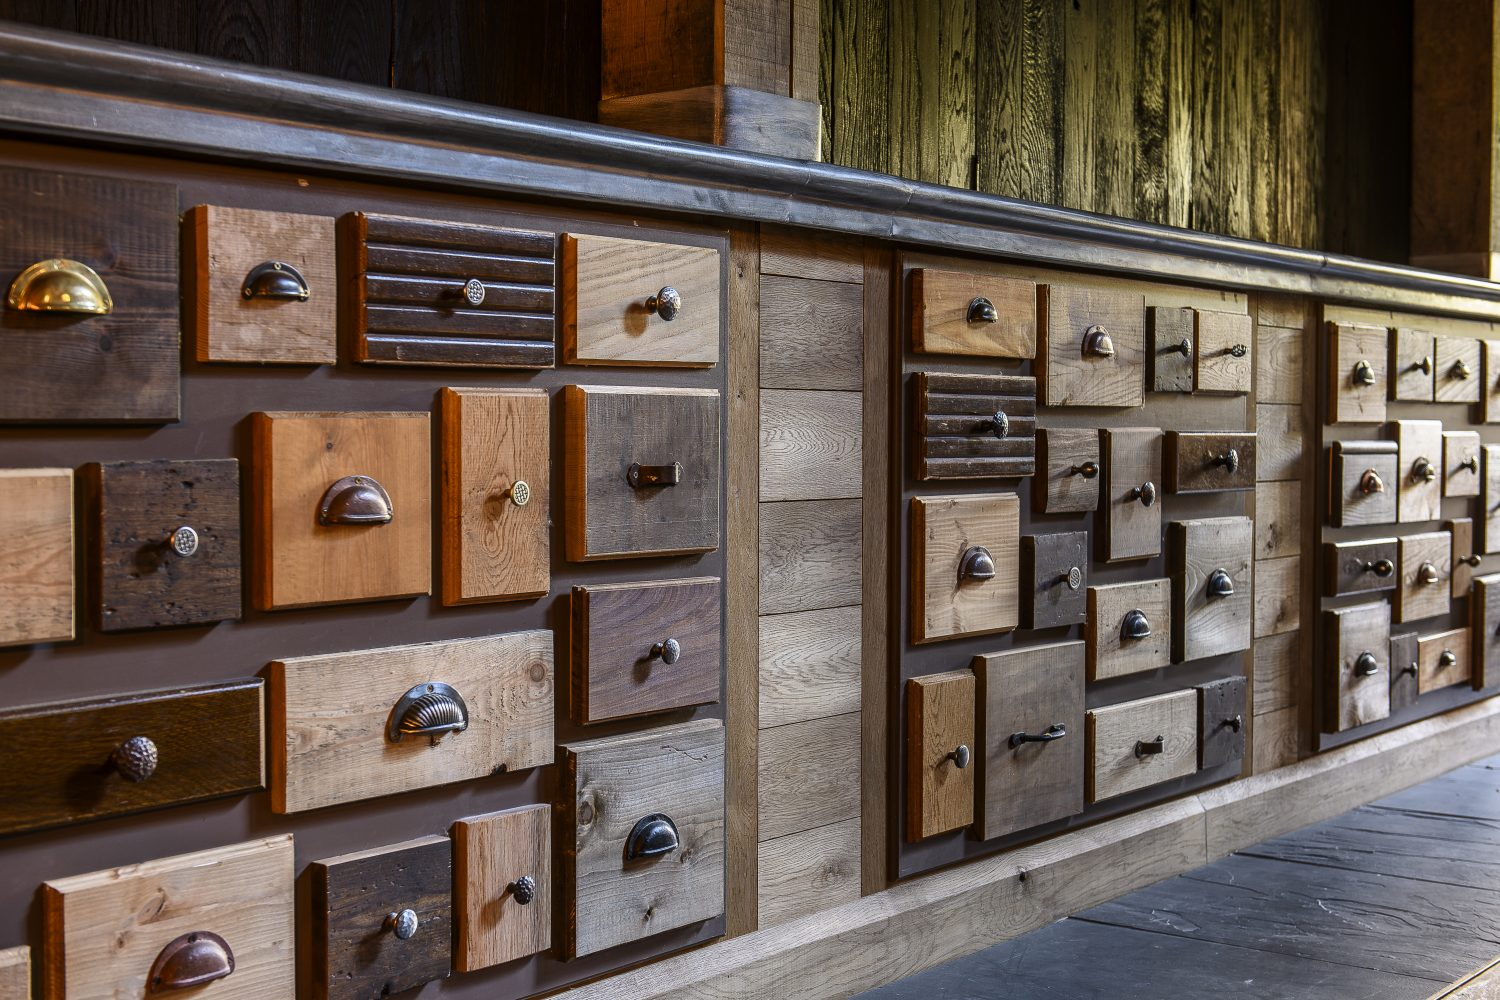 A new bar made out of mismatched drawers will contain little surprises for the curious-minded